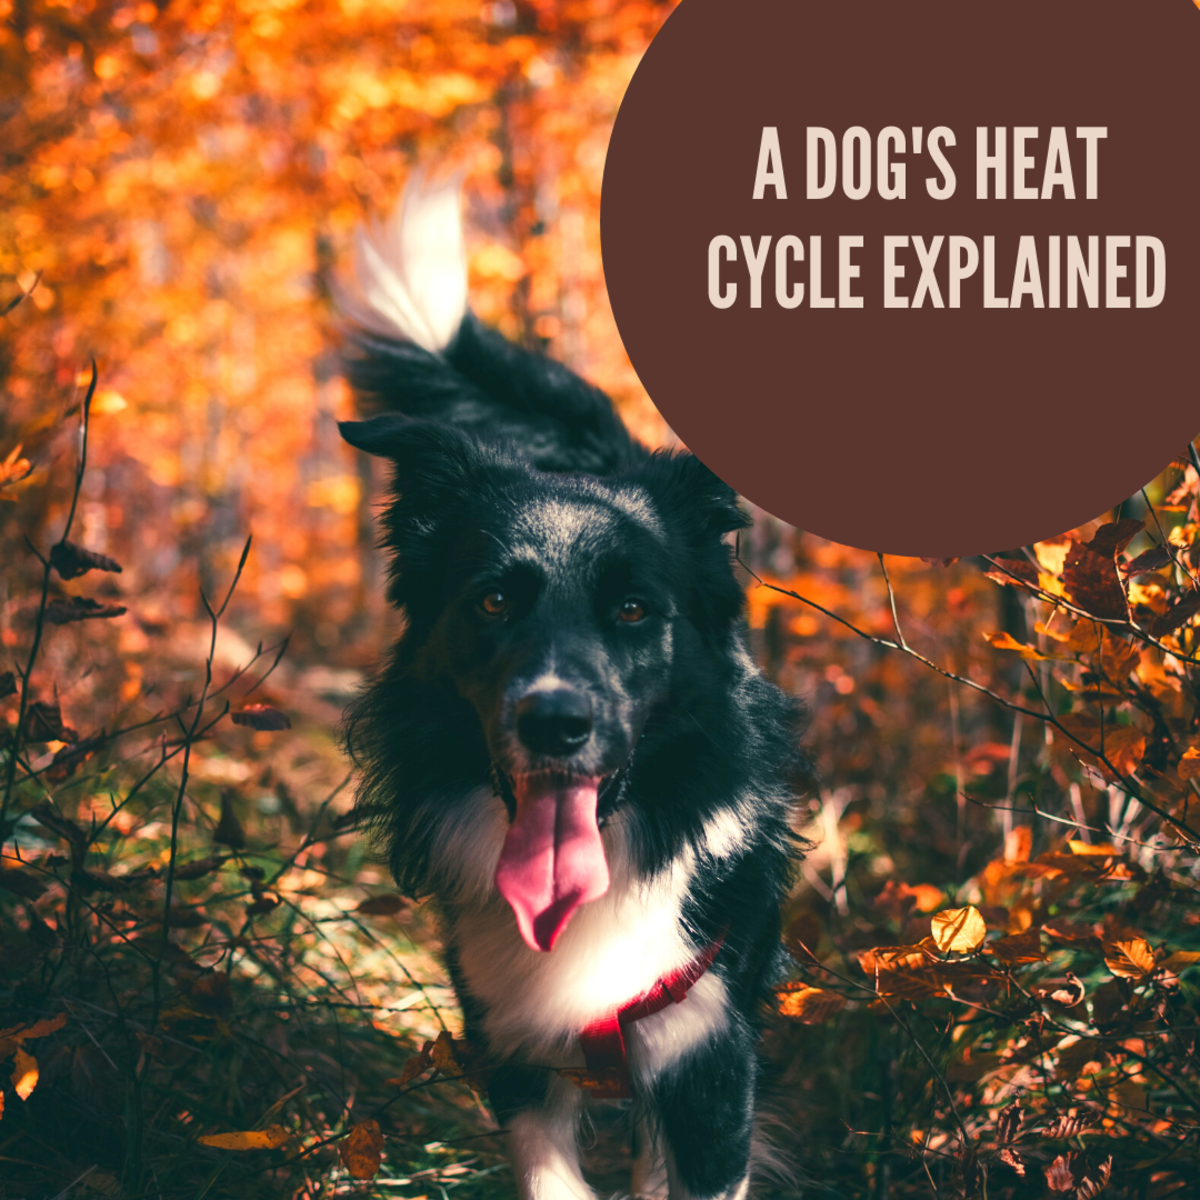 The canine heat cycle does not occur at any particular time of year or season.